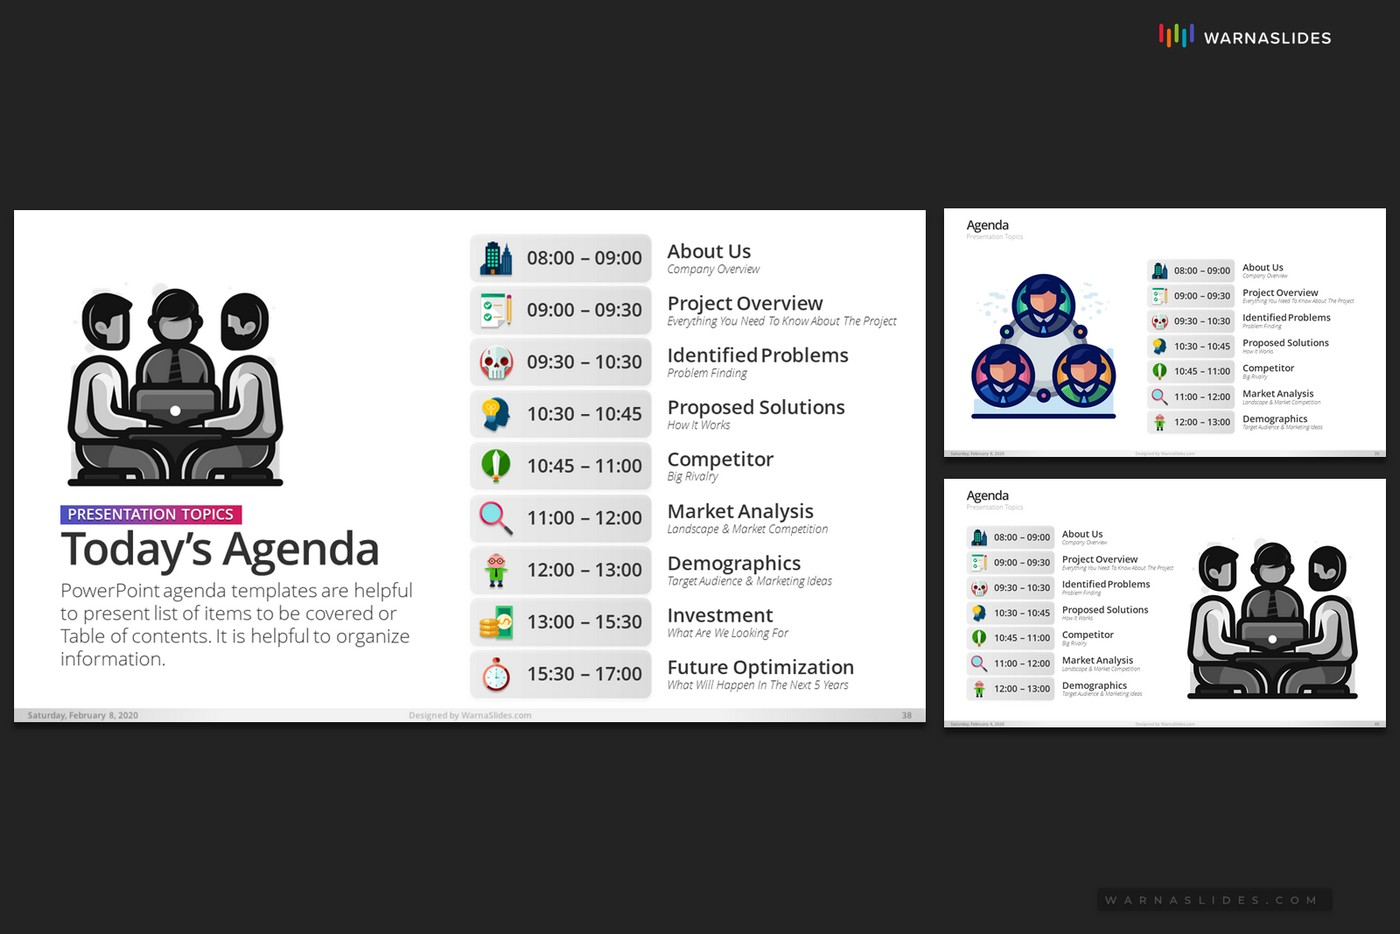 Agenda-Meeting-PowerPoint-Template-2020-for-Business-Pitch-Deck-Professional-Creative-Presentation-by-Warna-Slides-013